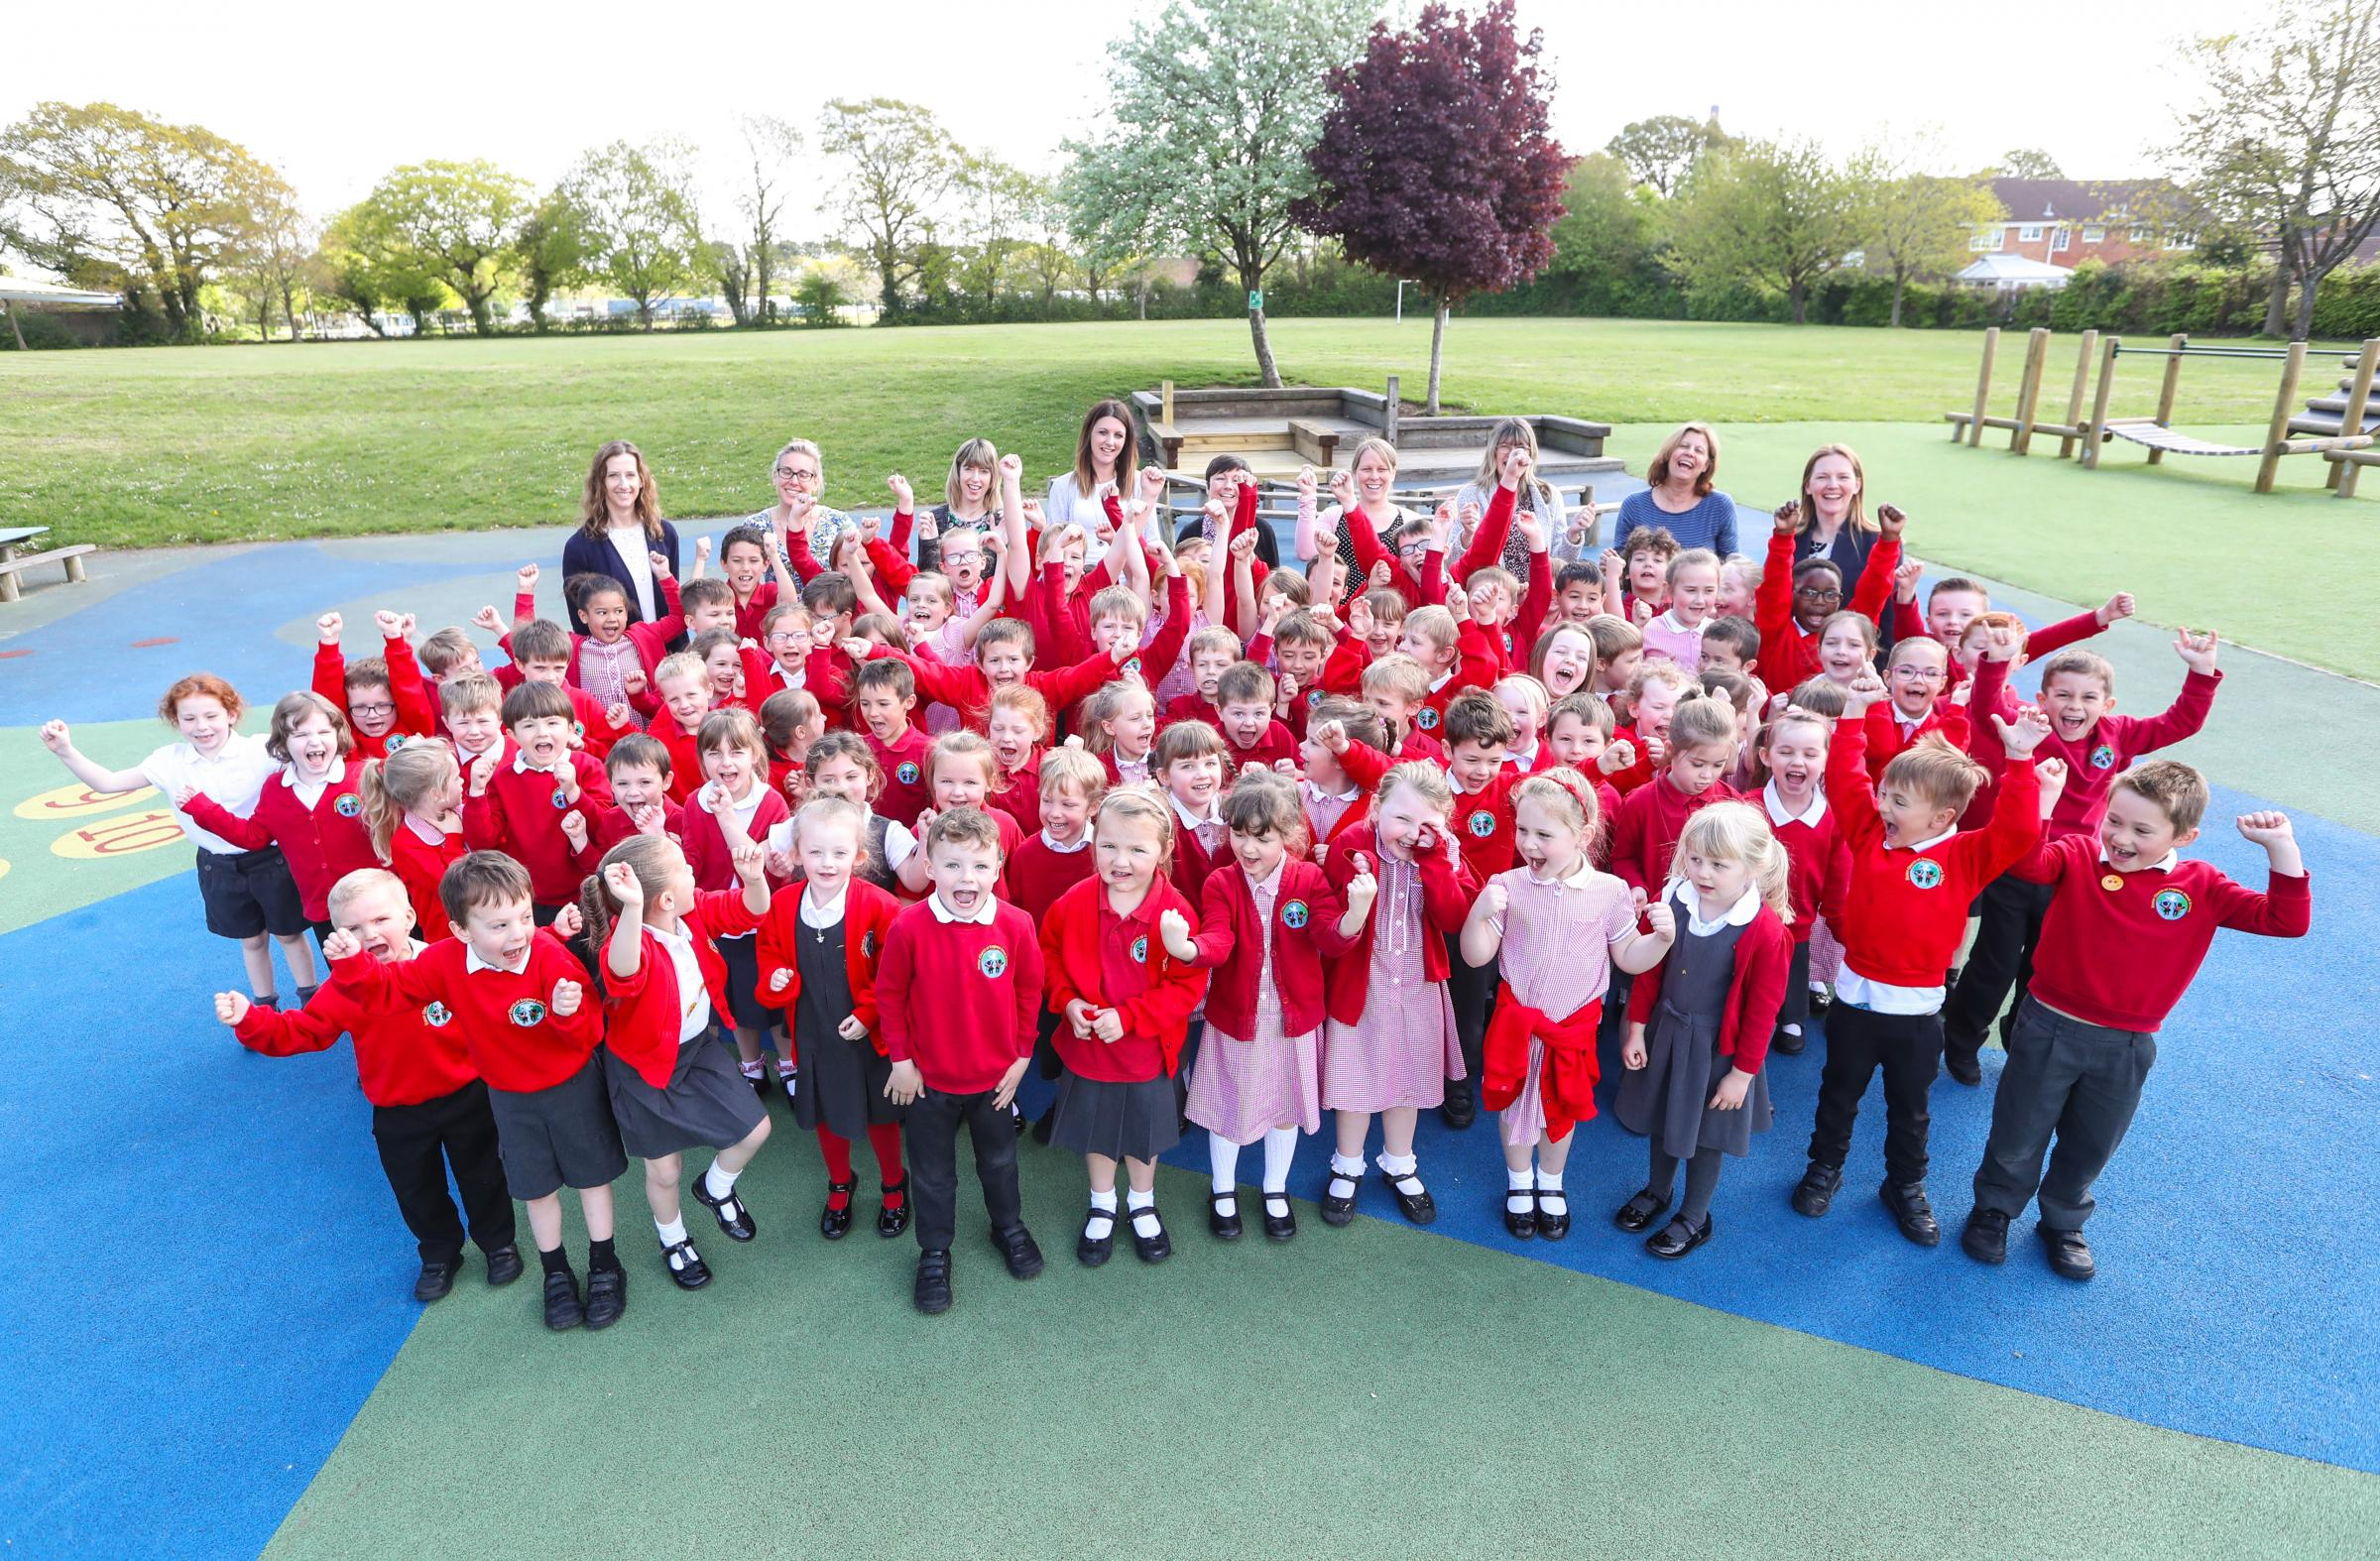 Photo Stuart Martin - Manor Infant School in Holbury school report following the school good Ofsted report - The schools pupils and teaching staff celebrate the school's good Ofsted report.